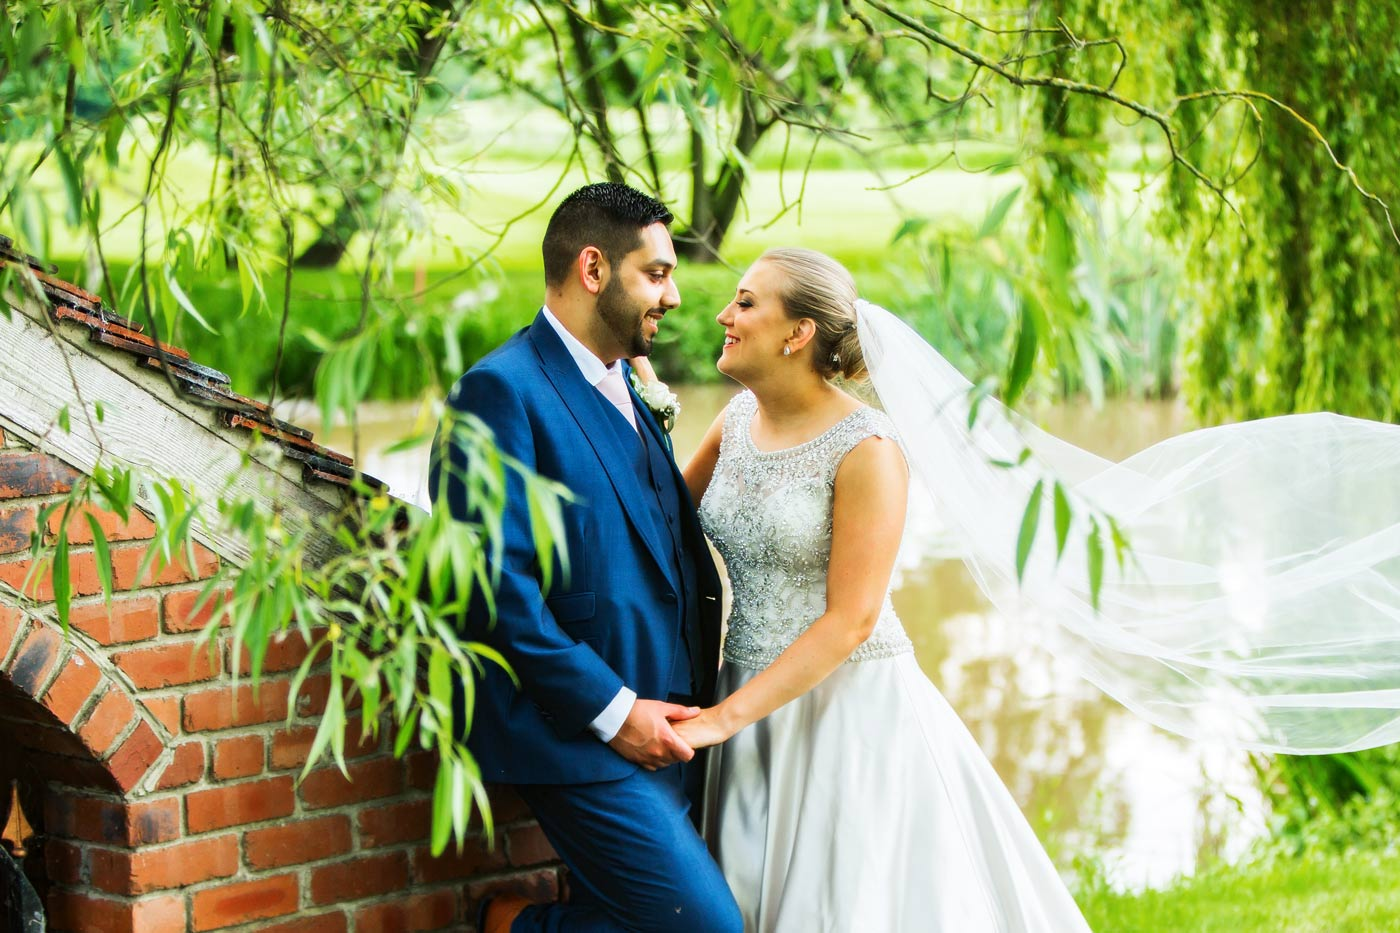 Wedding Photography and Video at The Belfry Hotel // Pheobe & Sanj